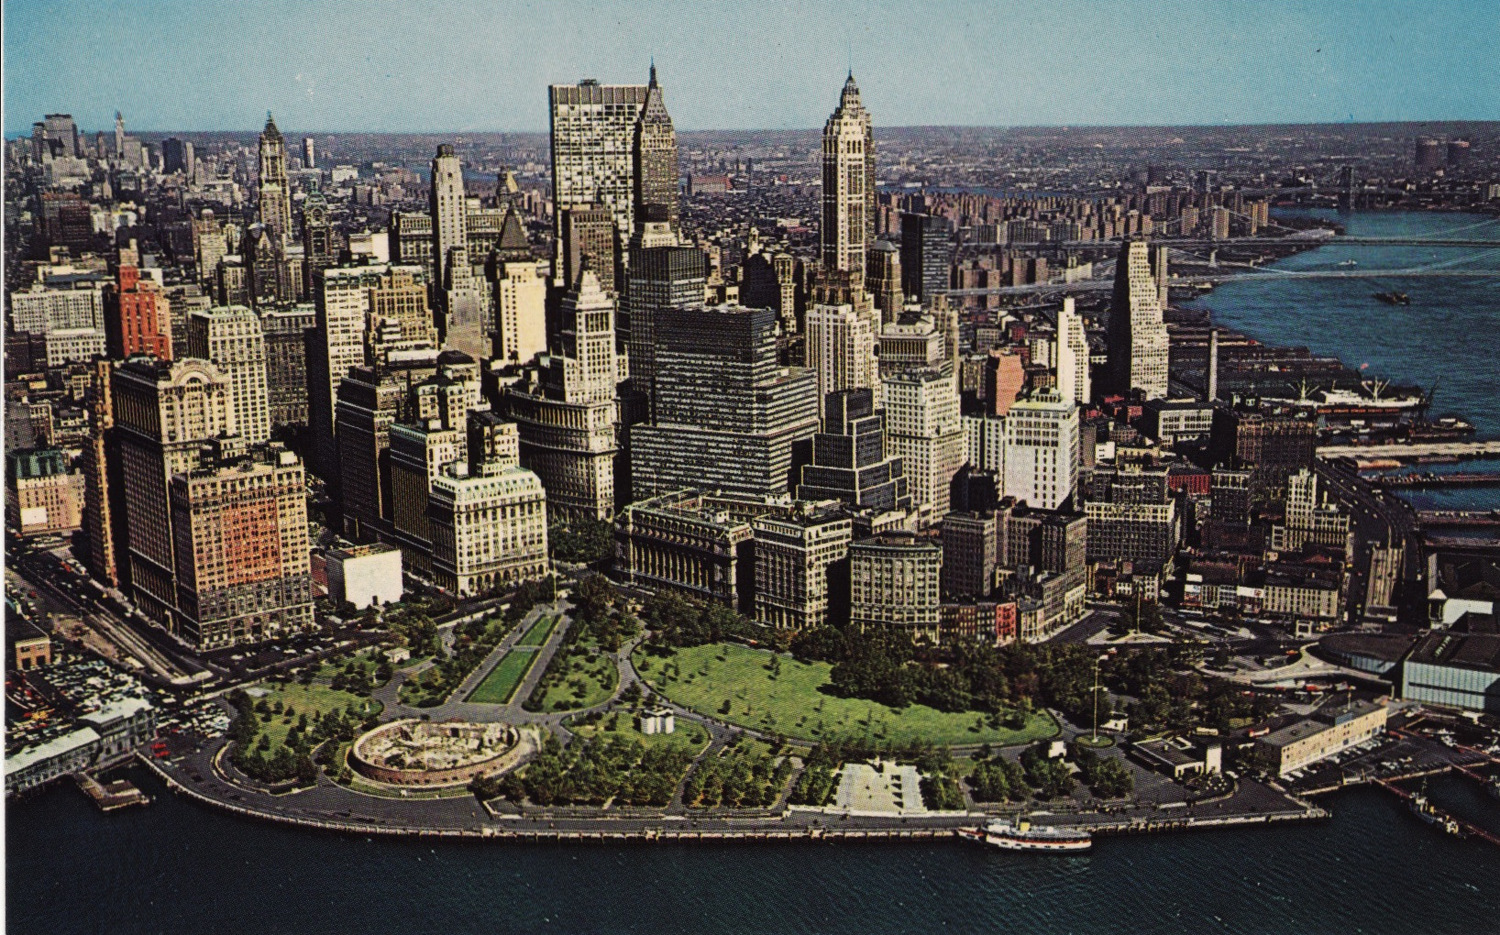 A close view of lower Manhattan's financial district looking north in 1963. Only a few post-war buildings have been constructed in the financial district.